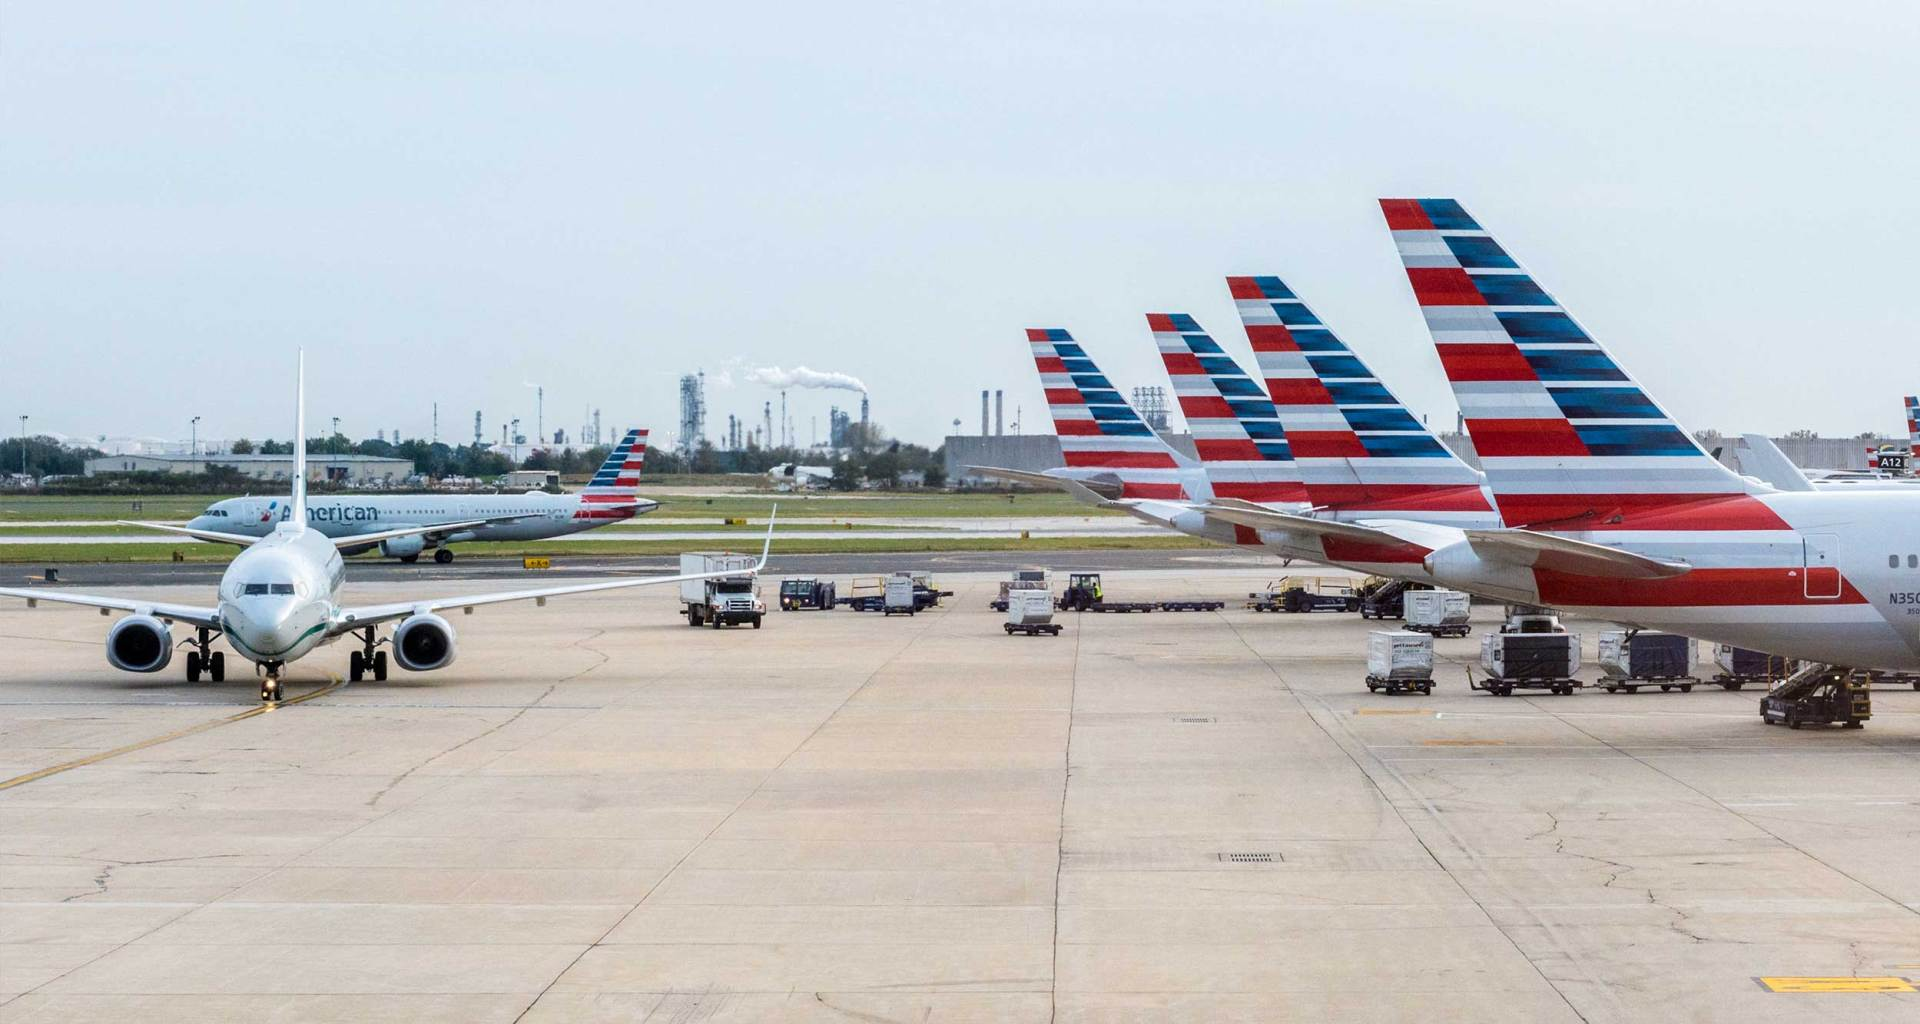 American Airlines planes parked at airport terminal.